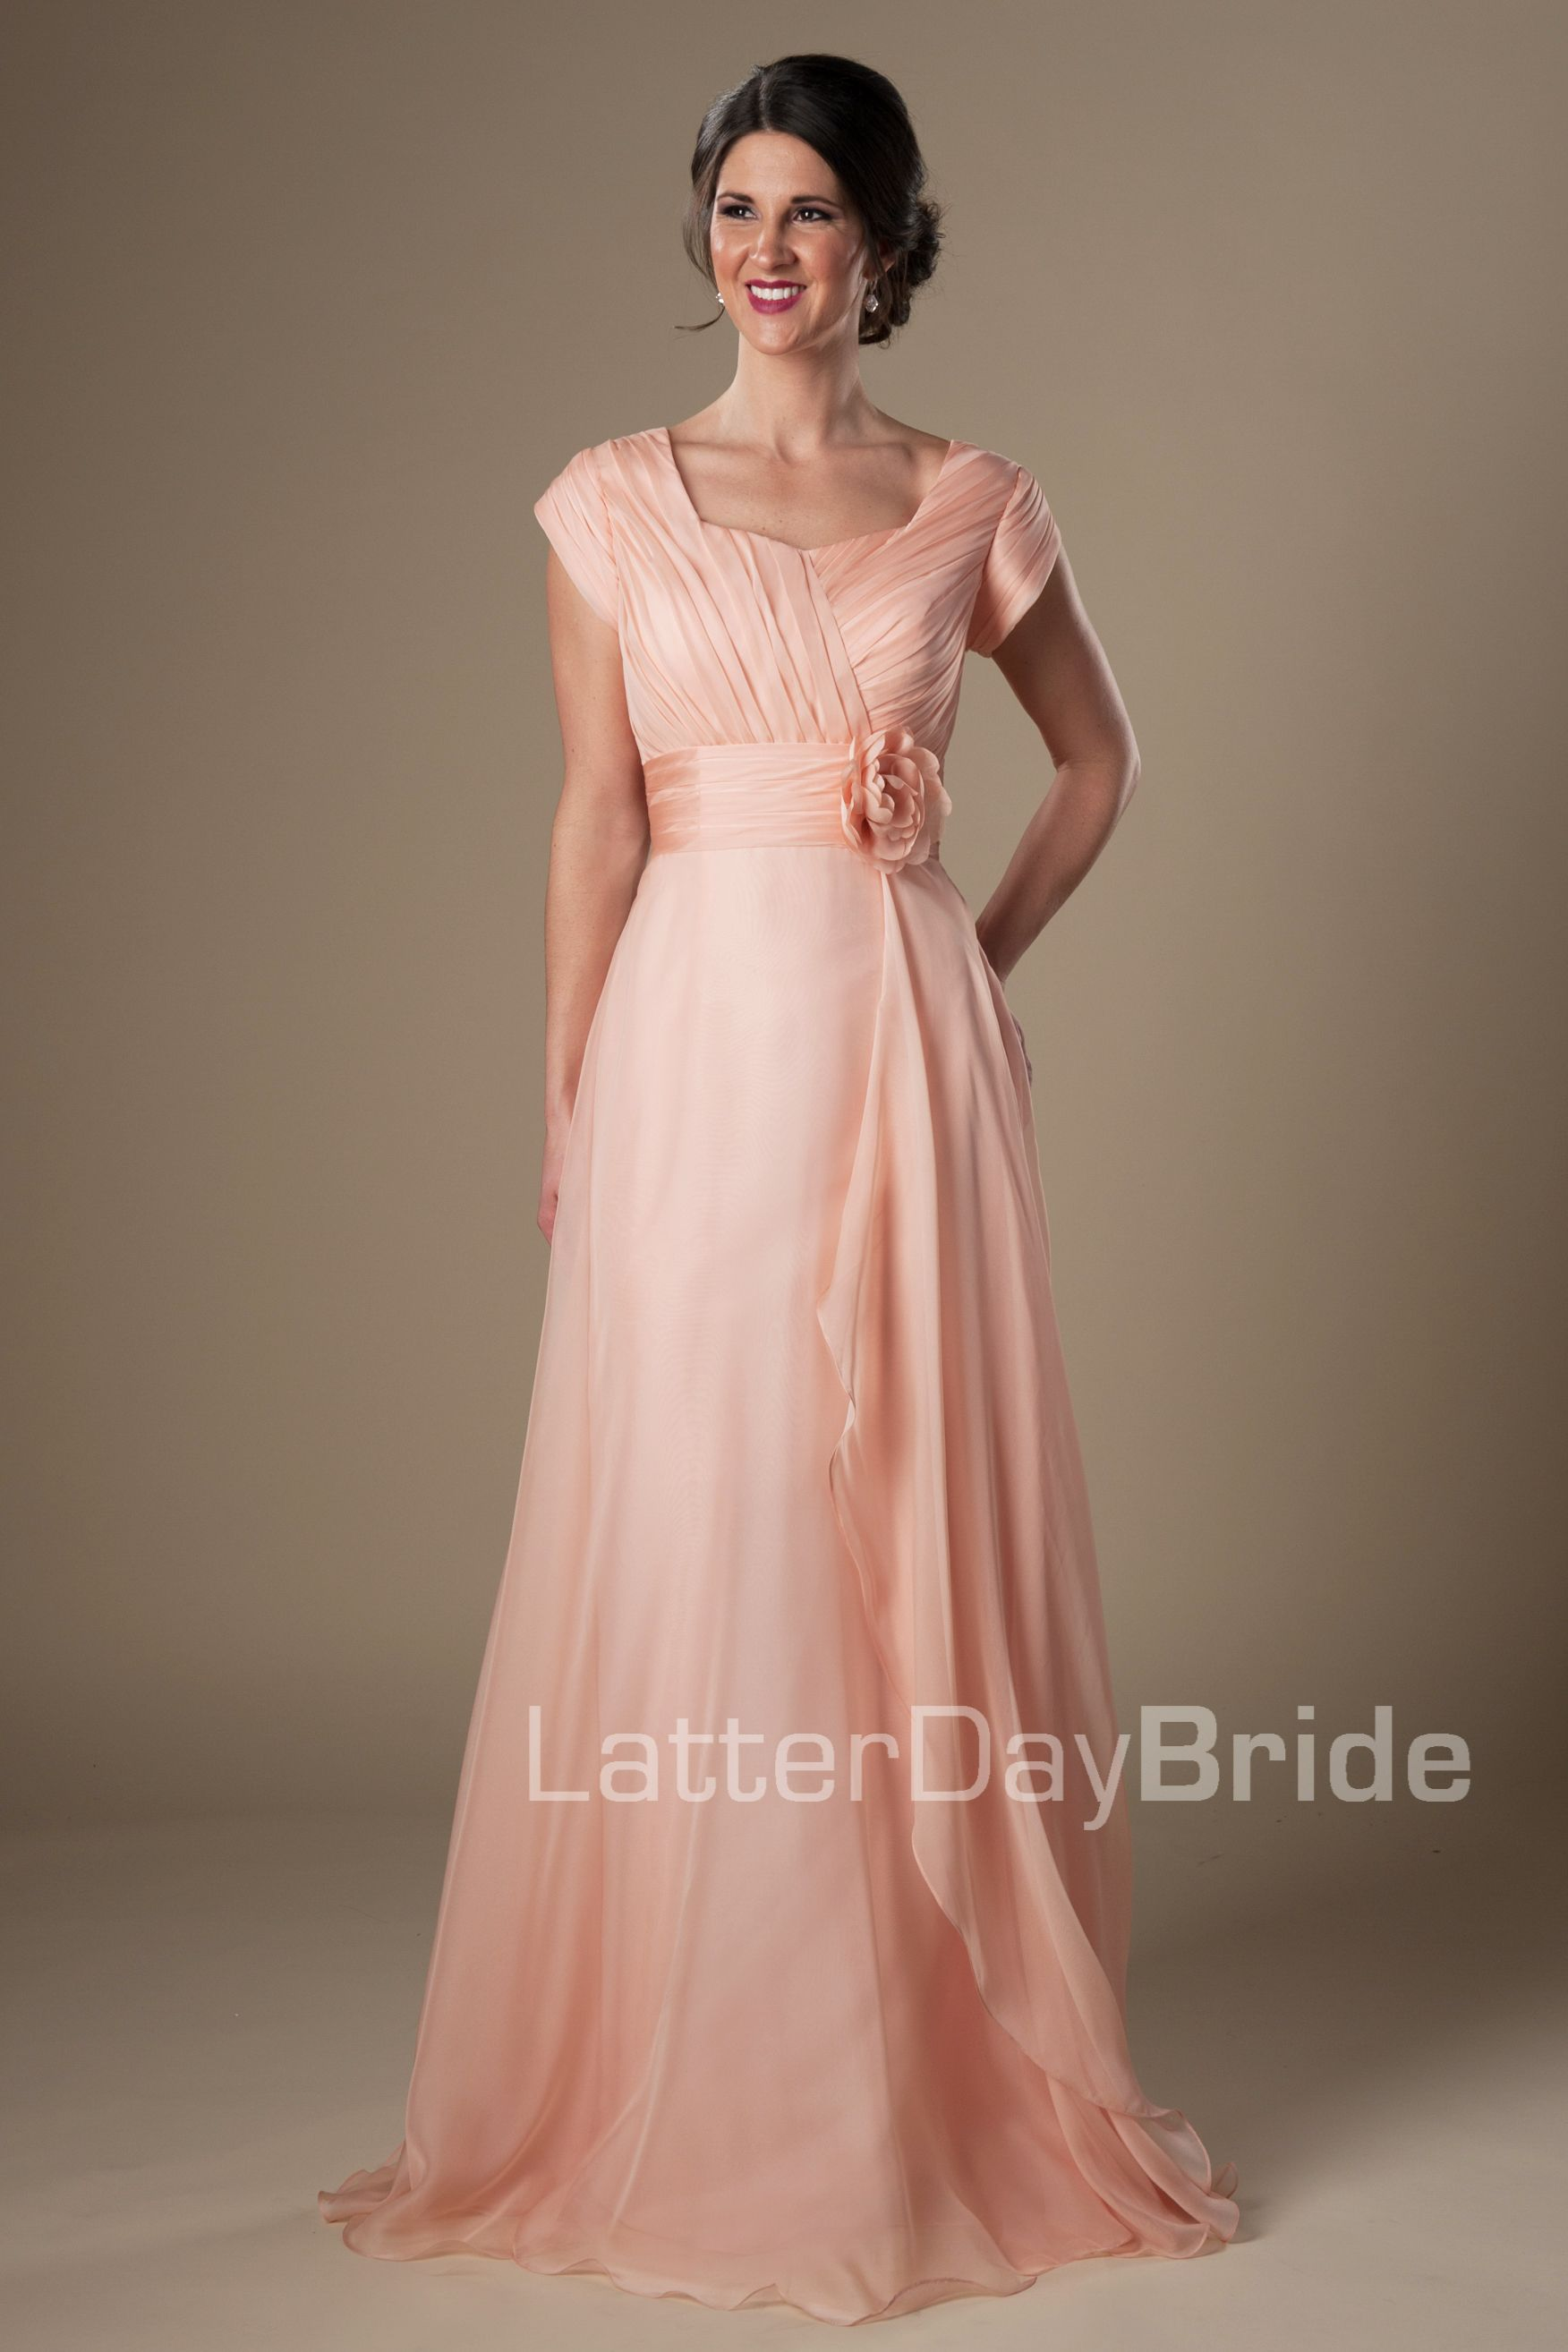 Marley bridesmaid dresses pinterest explore modest prom dresses dance dresses and more ombrellifo Choice Image